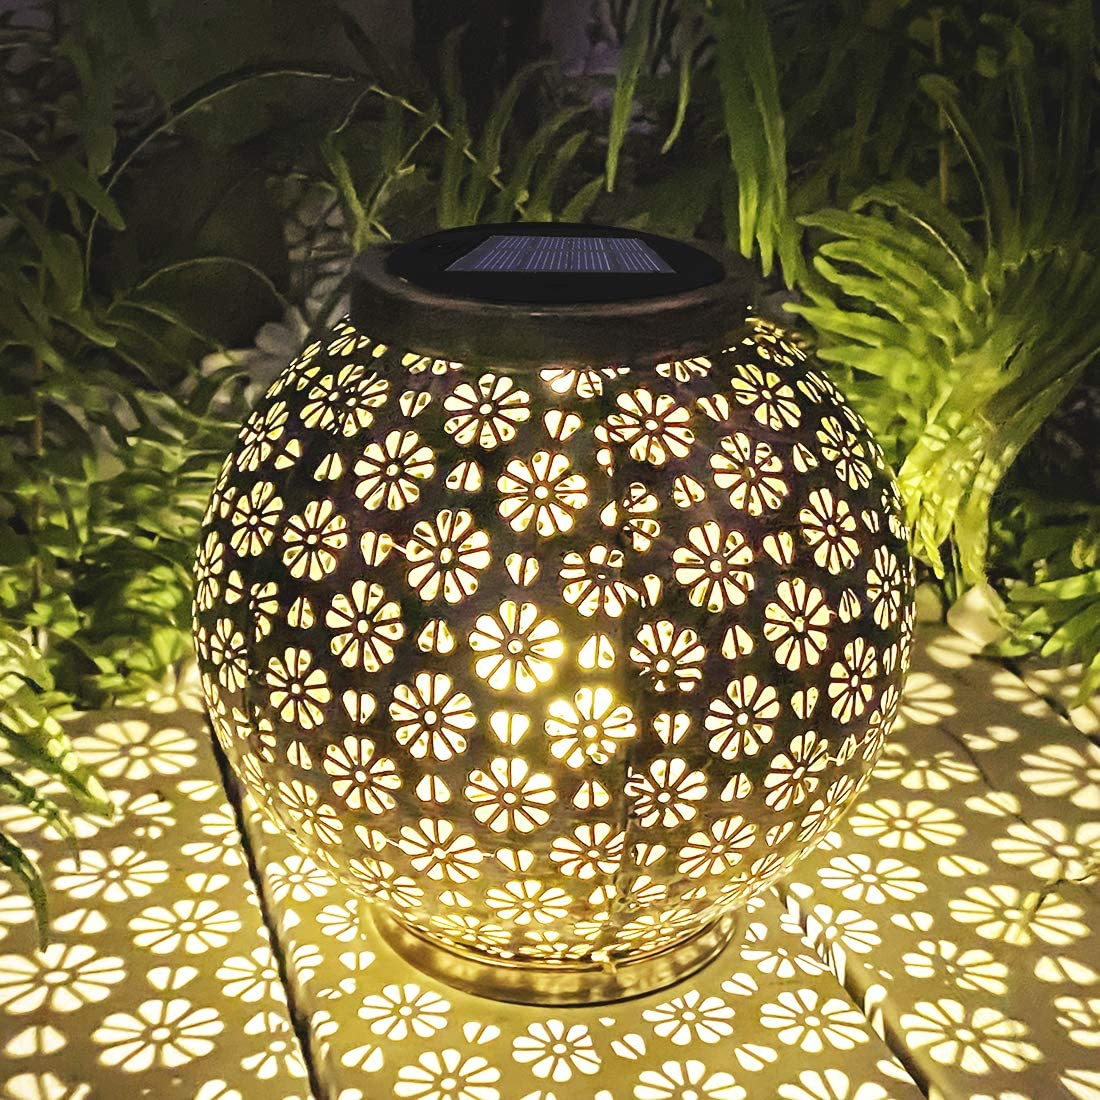 Solar Lantern Outdoor Hanging Lights Large Decorative Garden Lights Waterproof Metal Table Lamp for Garden, Yard, Tabletop, Patio, Lawn